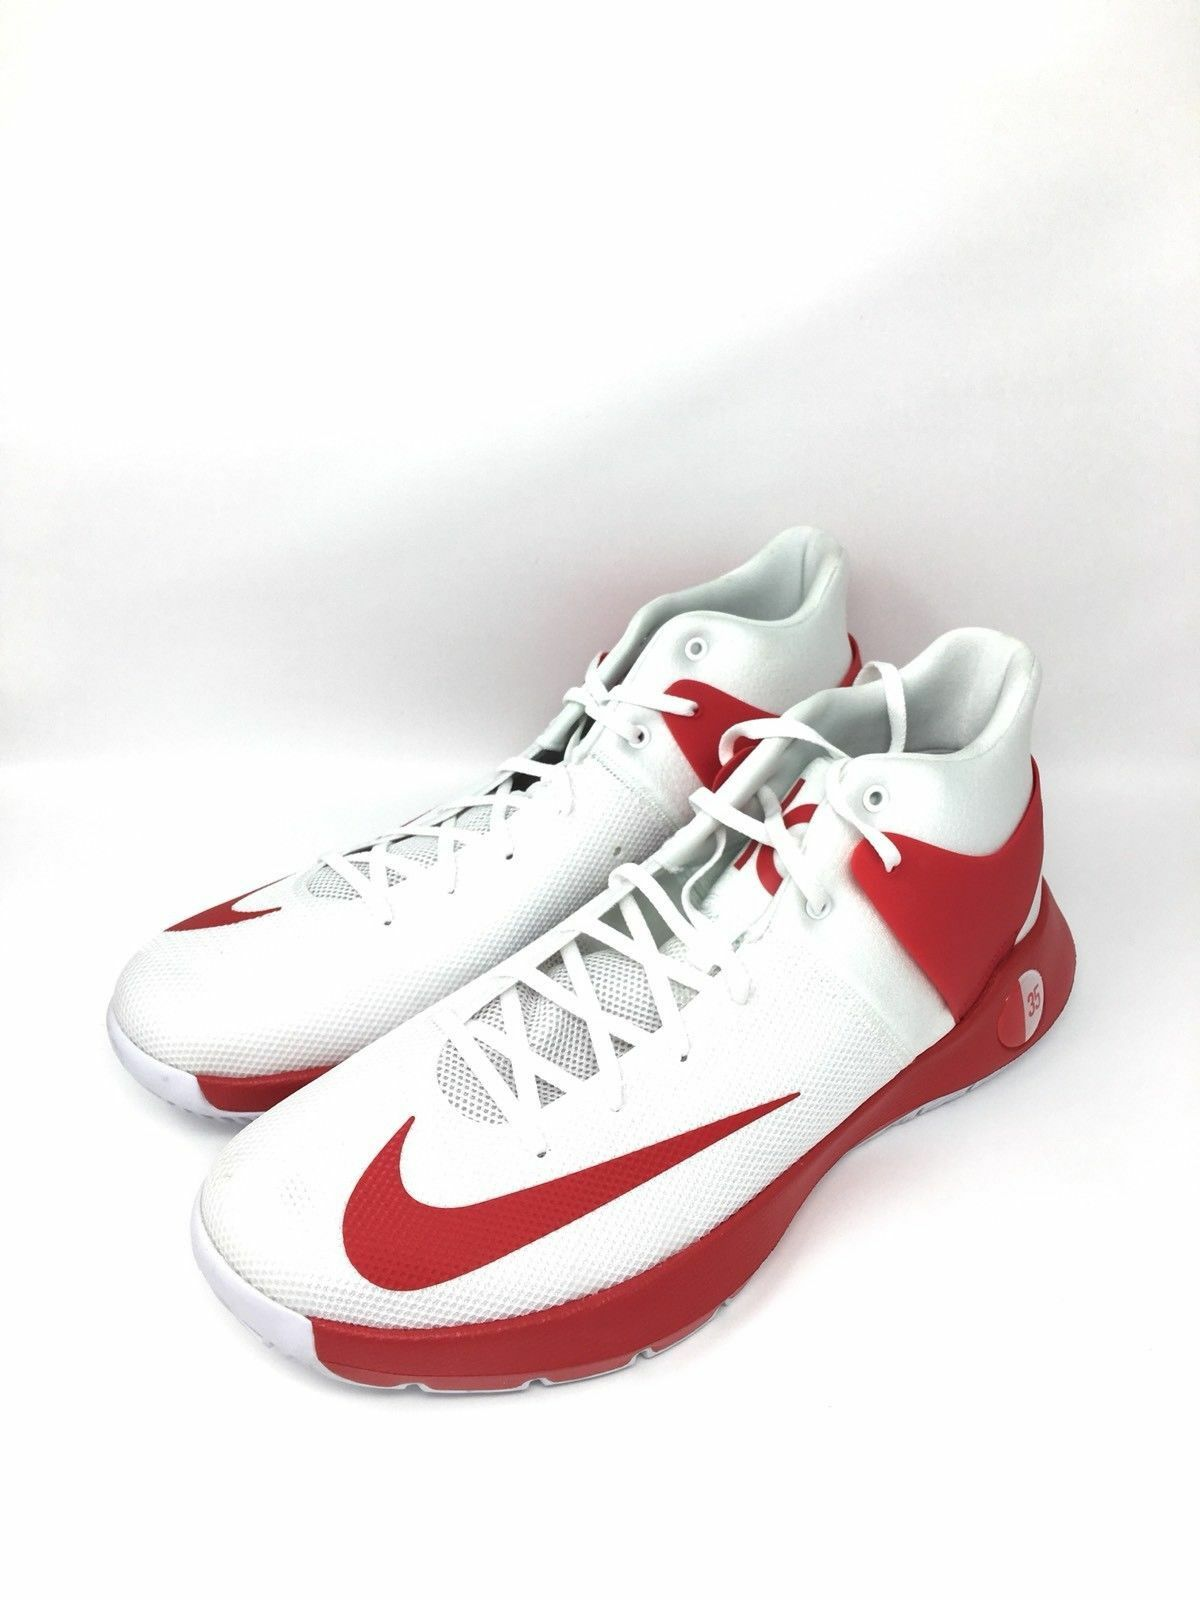 Nike KD Trey 5 Size 18 TB Basketball shoes White Red 856484-161 Rare Kevin Durant